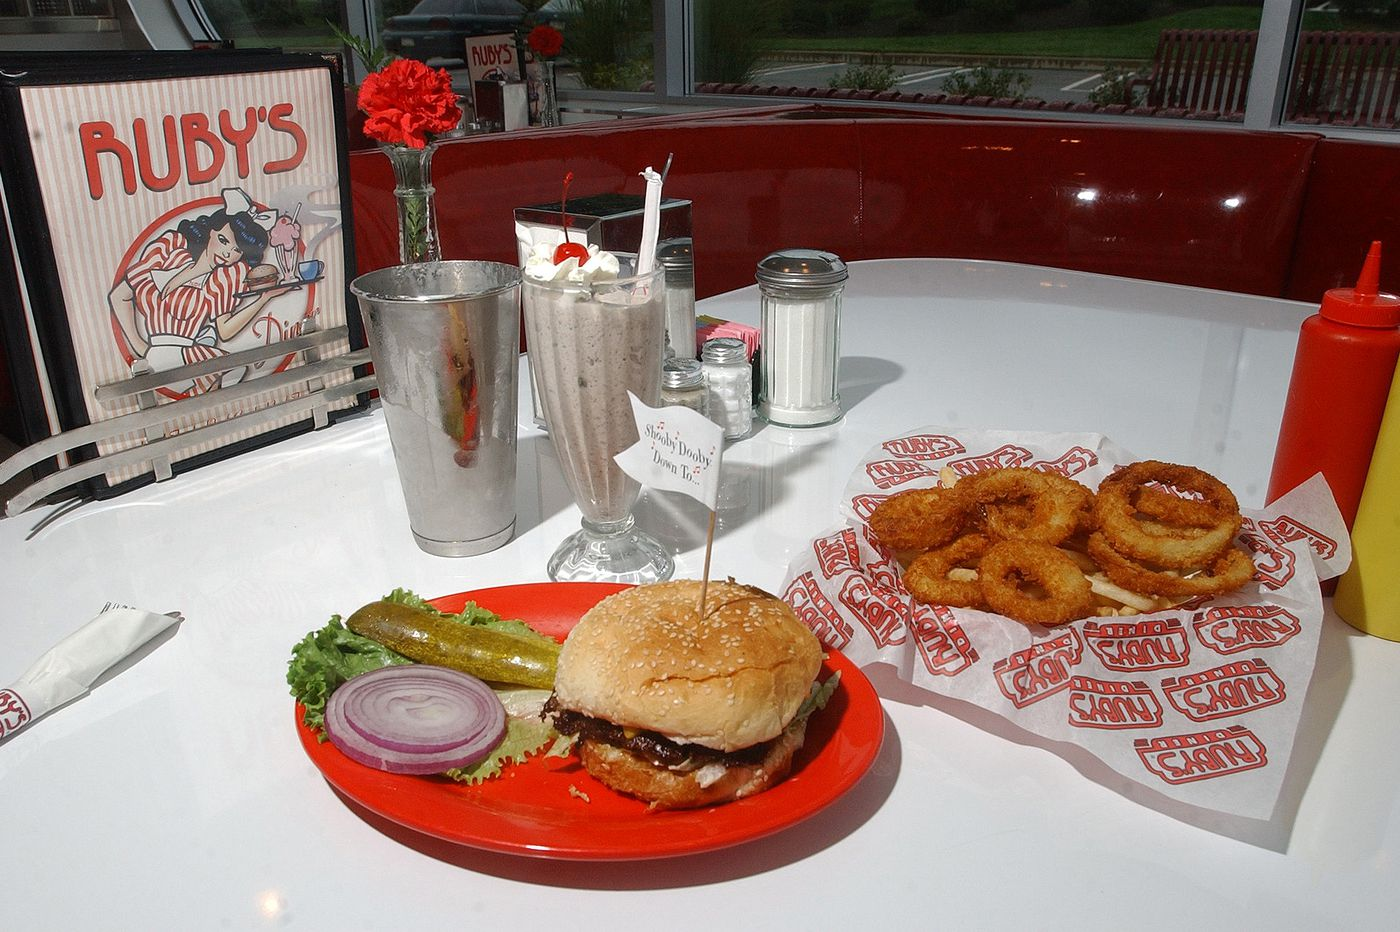 Goodbye, Ruby's Diner at Suburban Square in Ardmore